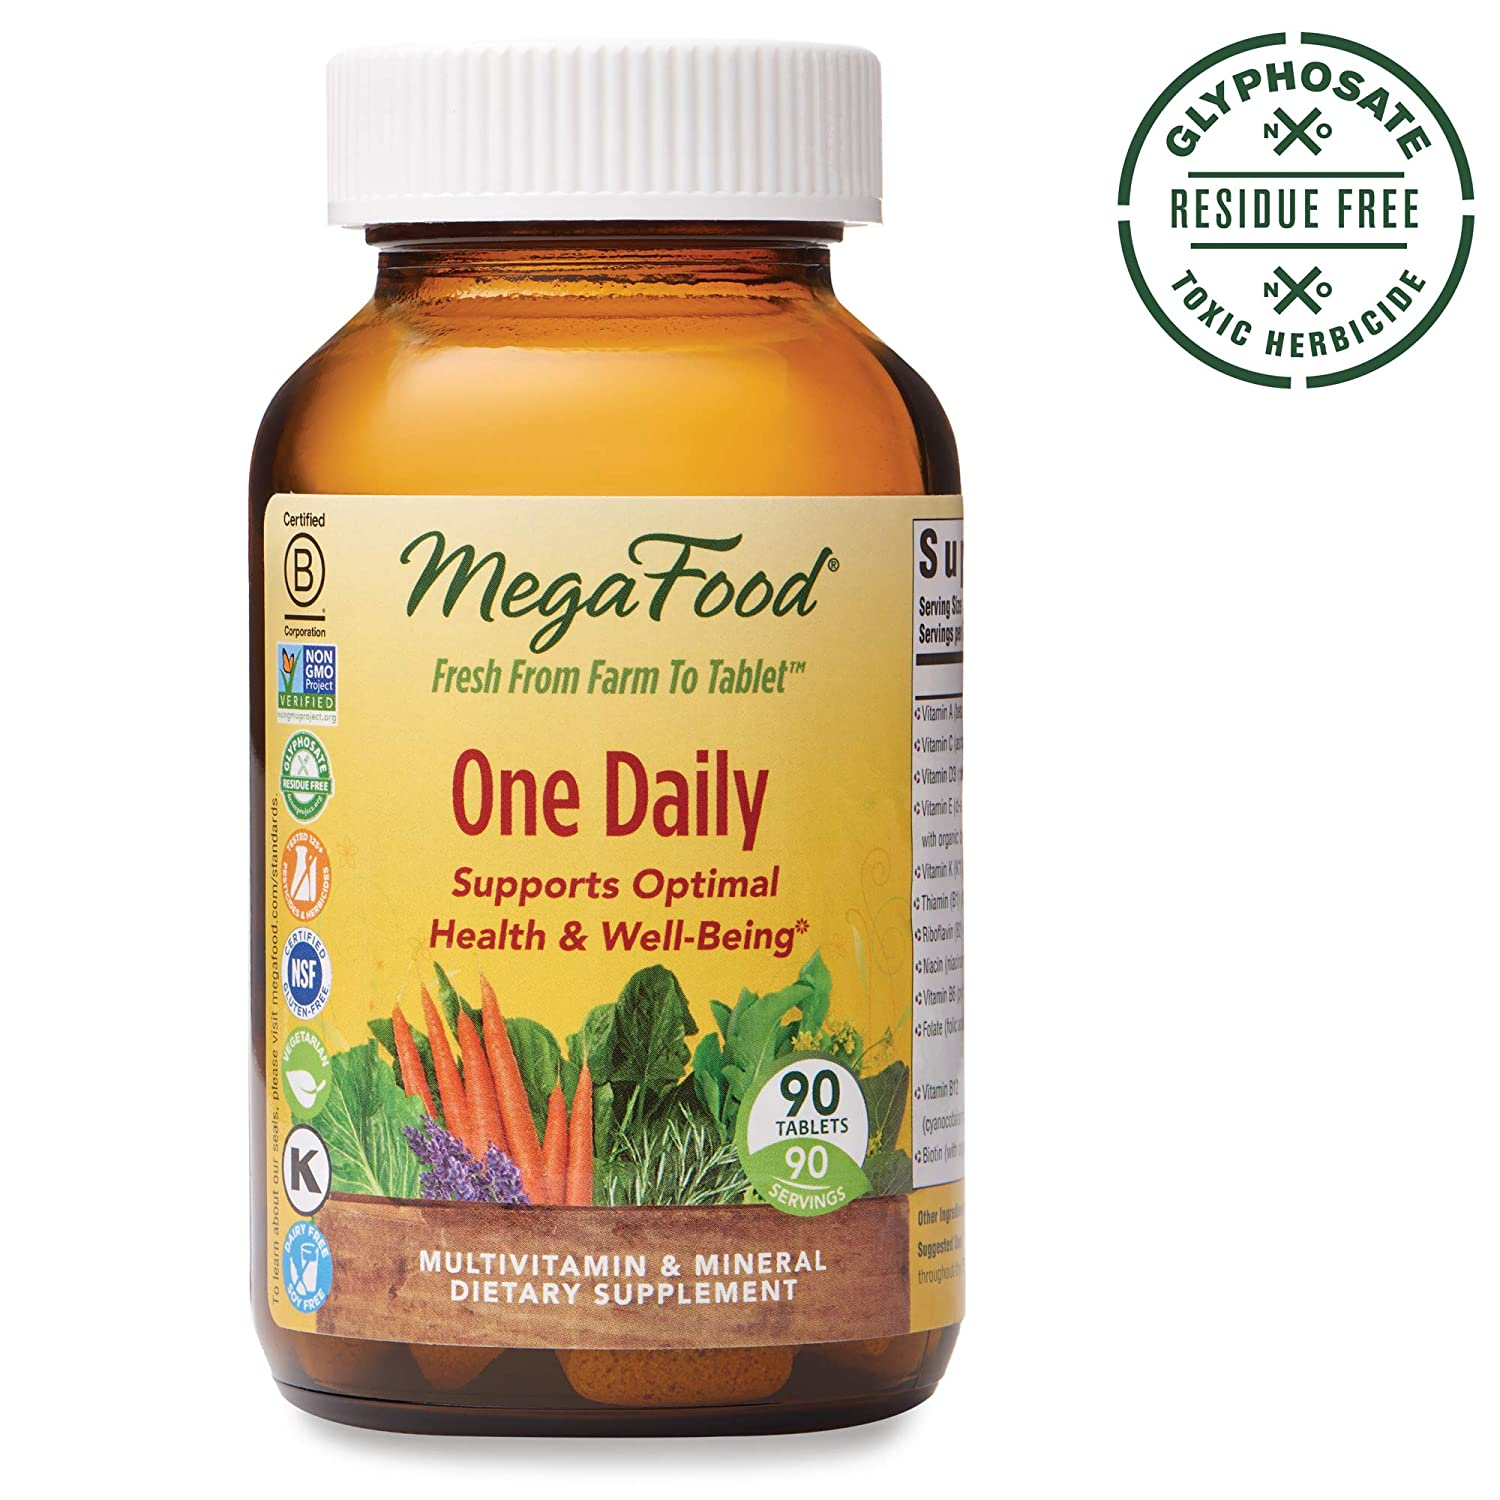 MegaFood, One Daily, Supports Optimal Health and Wellbeing, Multivitamin and Mineral Supplement, Gluten Free, Vegetarian, 90 Tablets (90 Servings) (FFP)